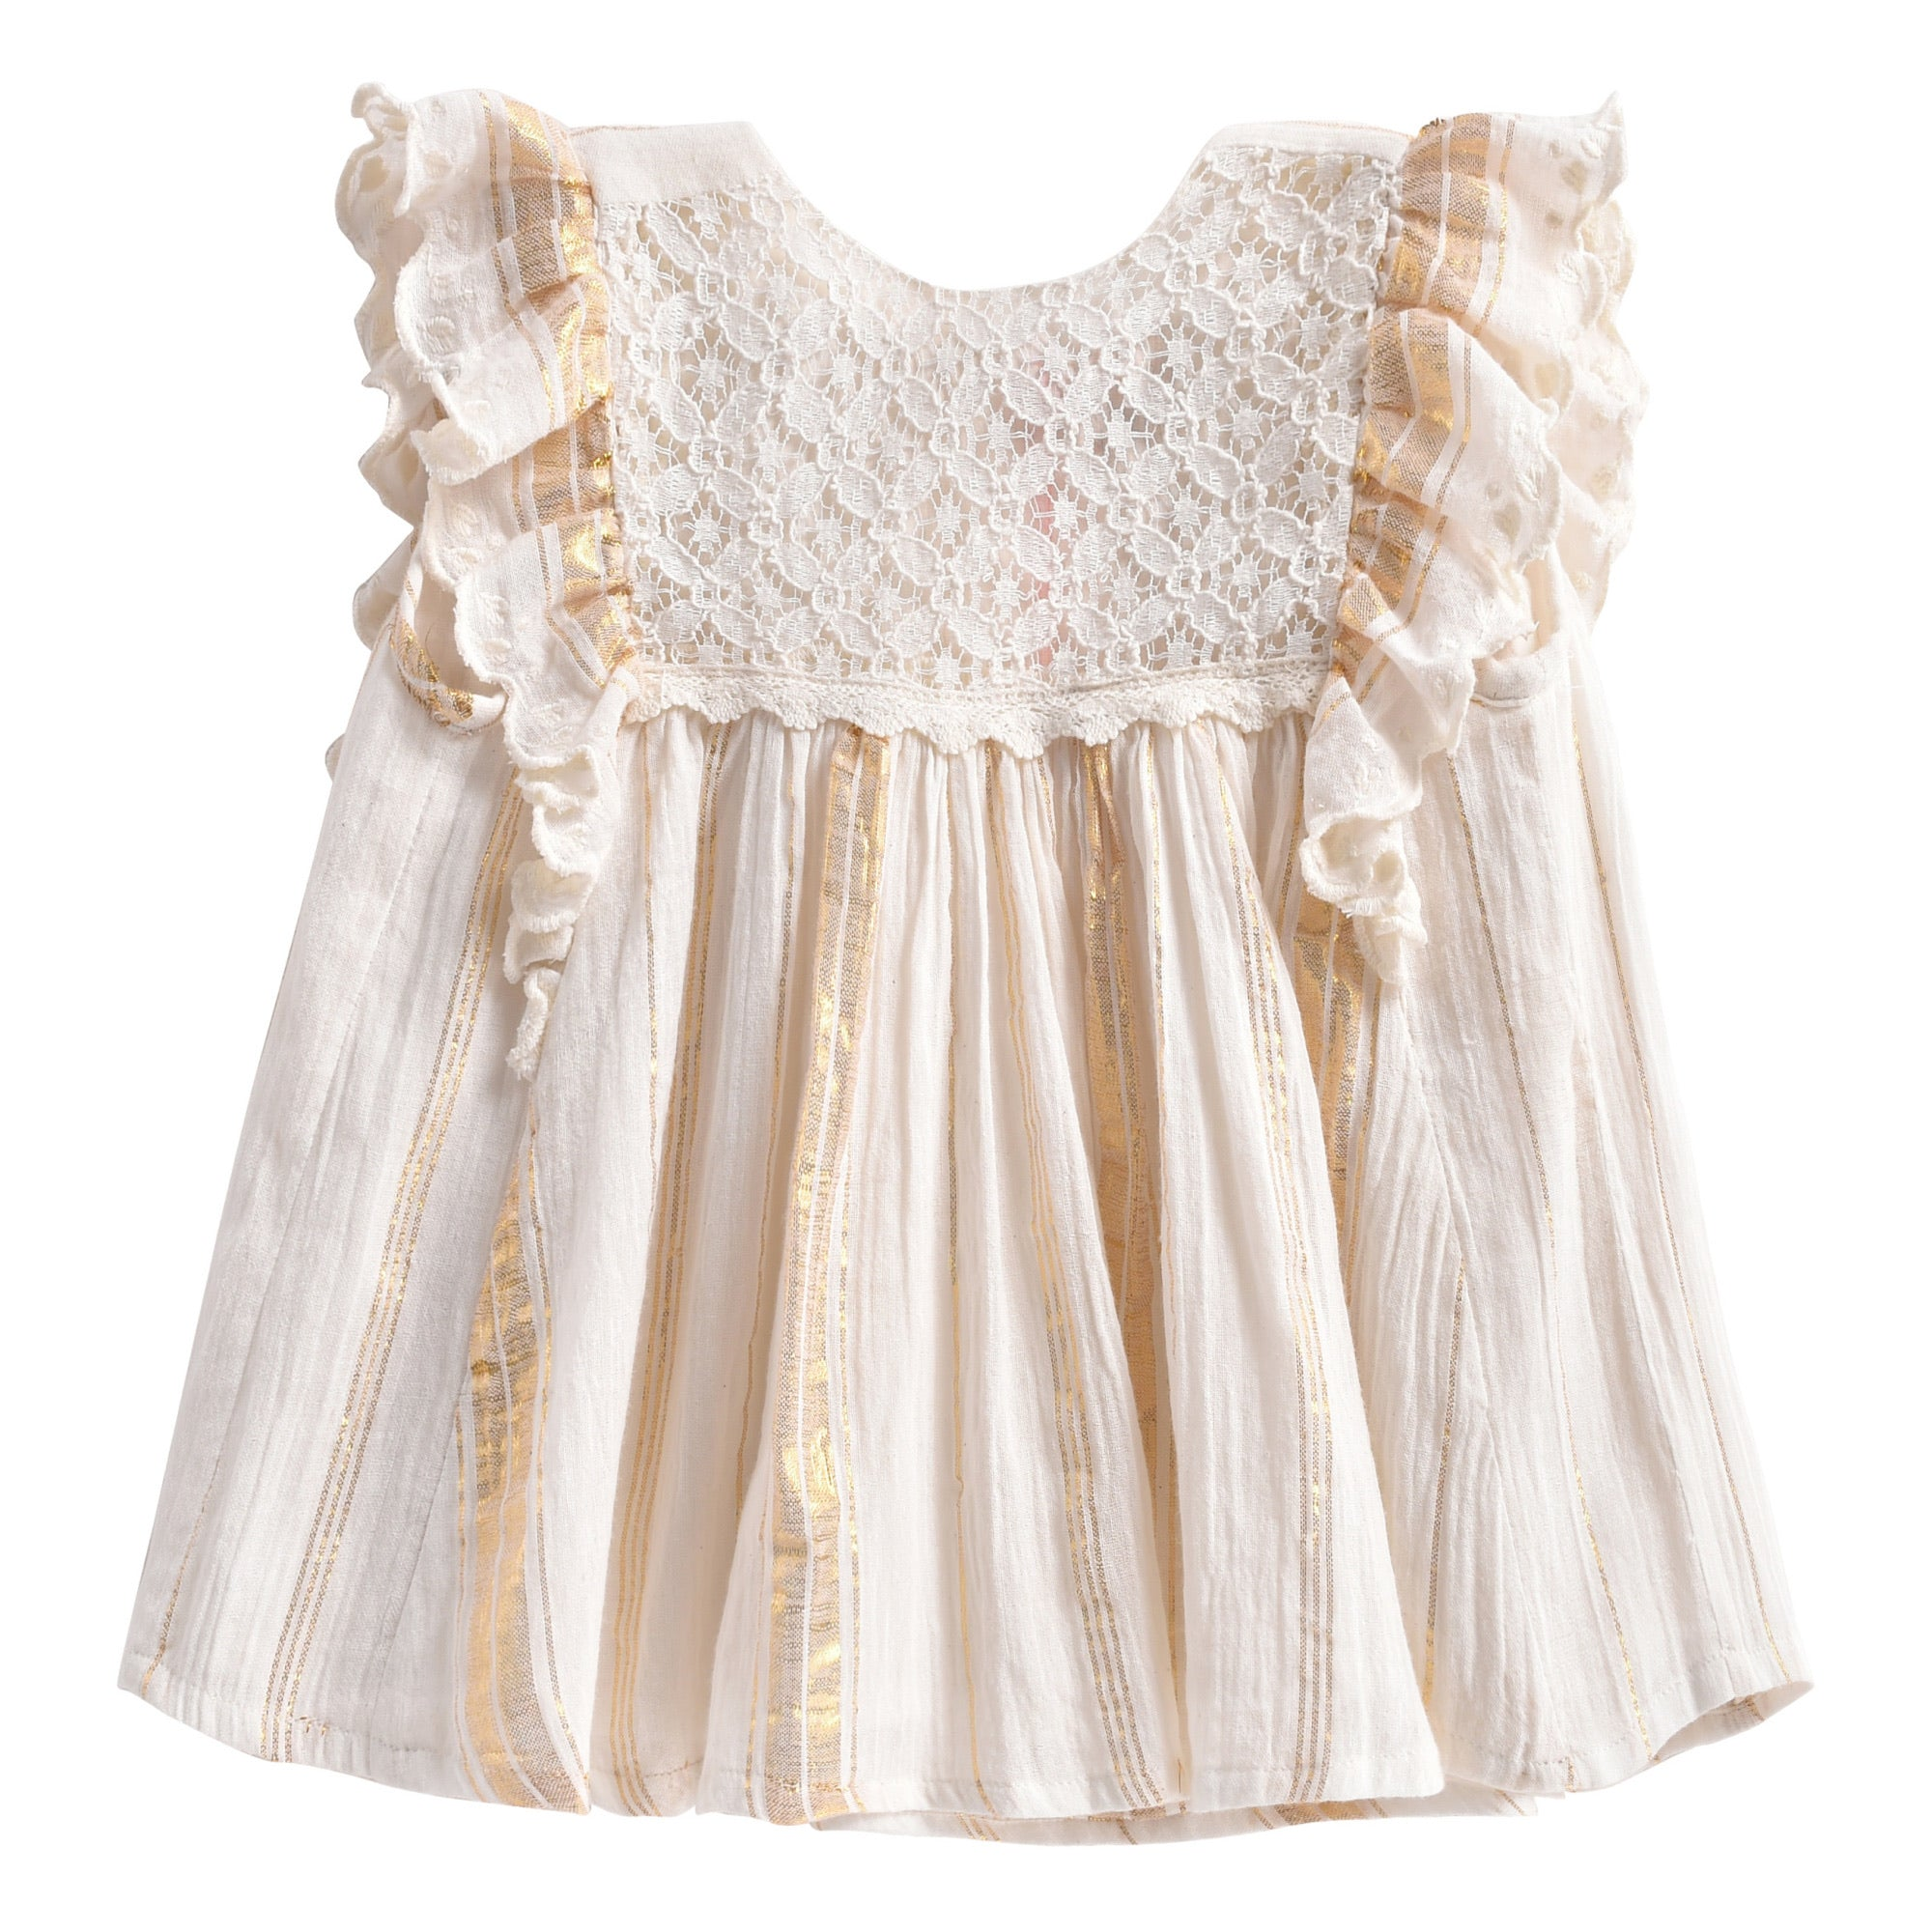 Dress Lyka White and Gold Stripes